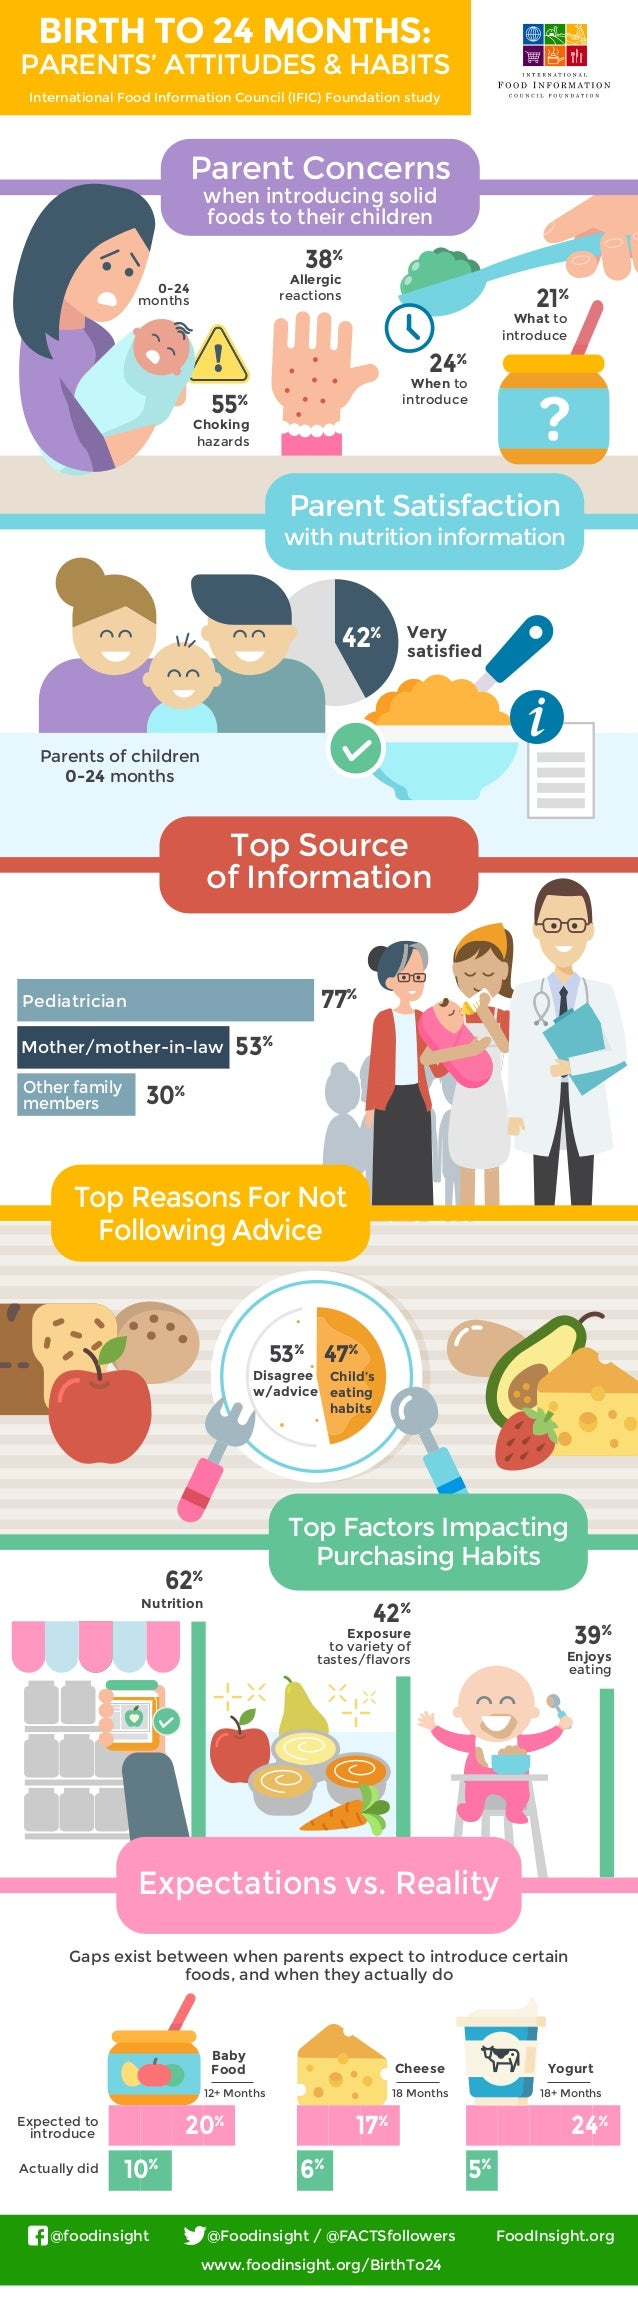 Exposure to variety of tastes/flavors 42% Enjoys eating 39% Nutrition 62% 53% 47% 30% 53% Pediatrician Mother/mother-in-law...